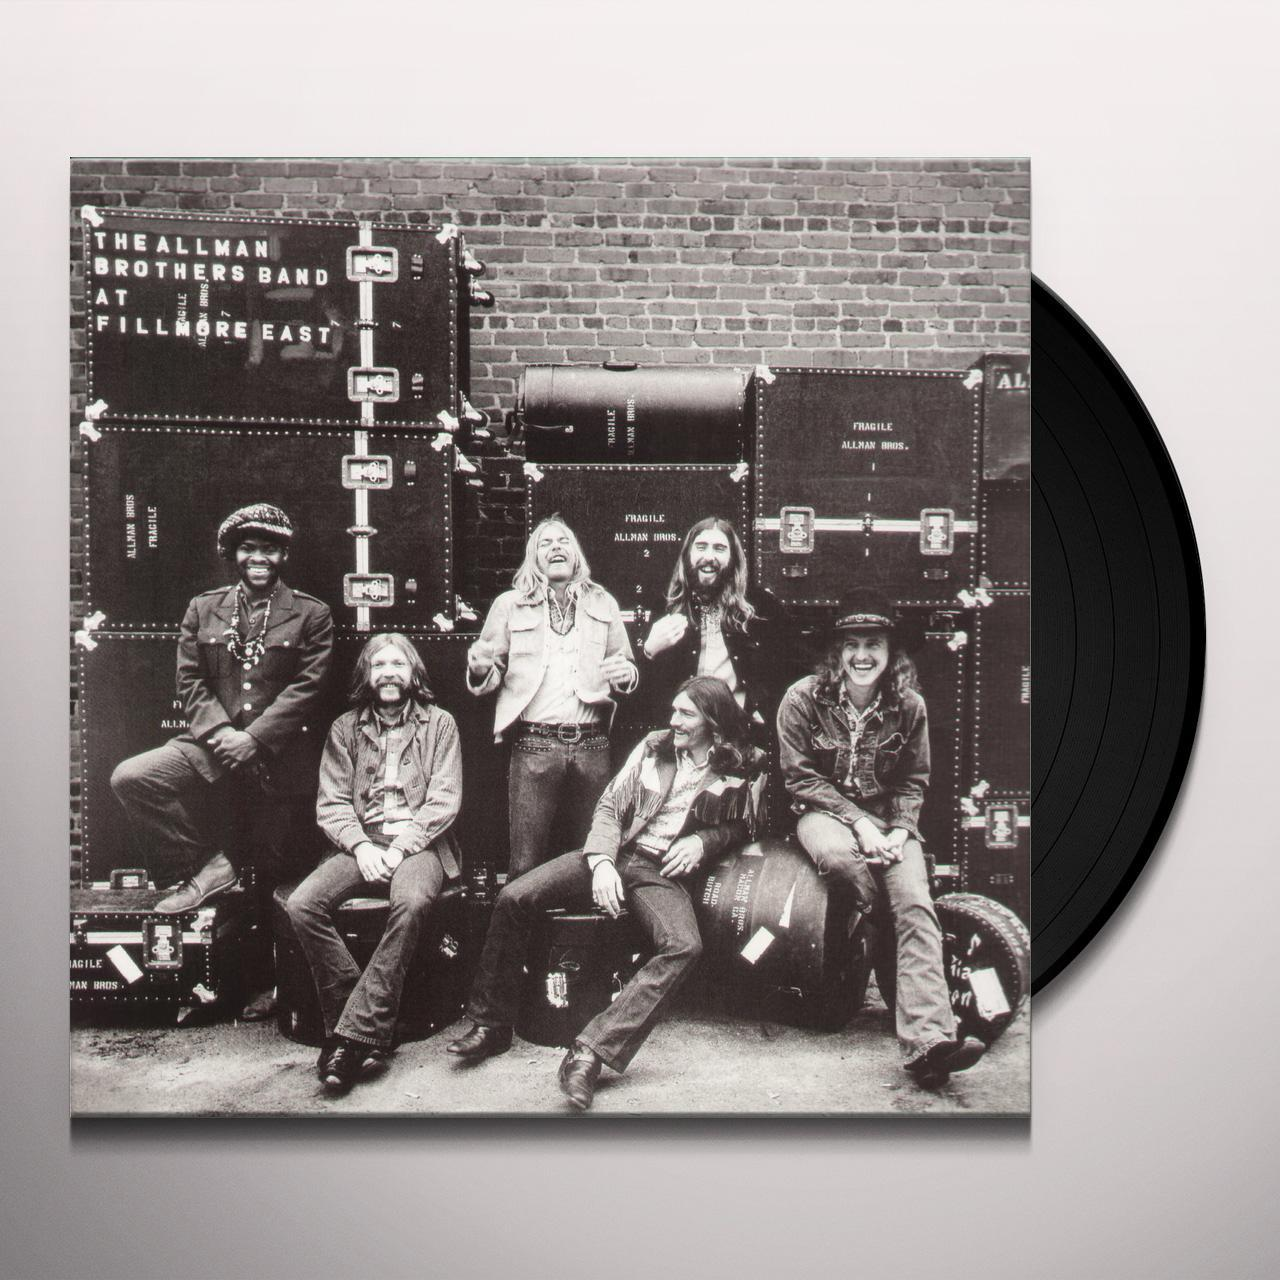 At Fillmore East by The Allman Brothers Band on Amazon ...